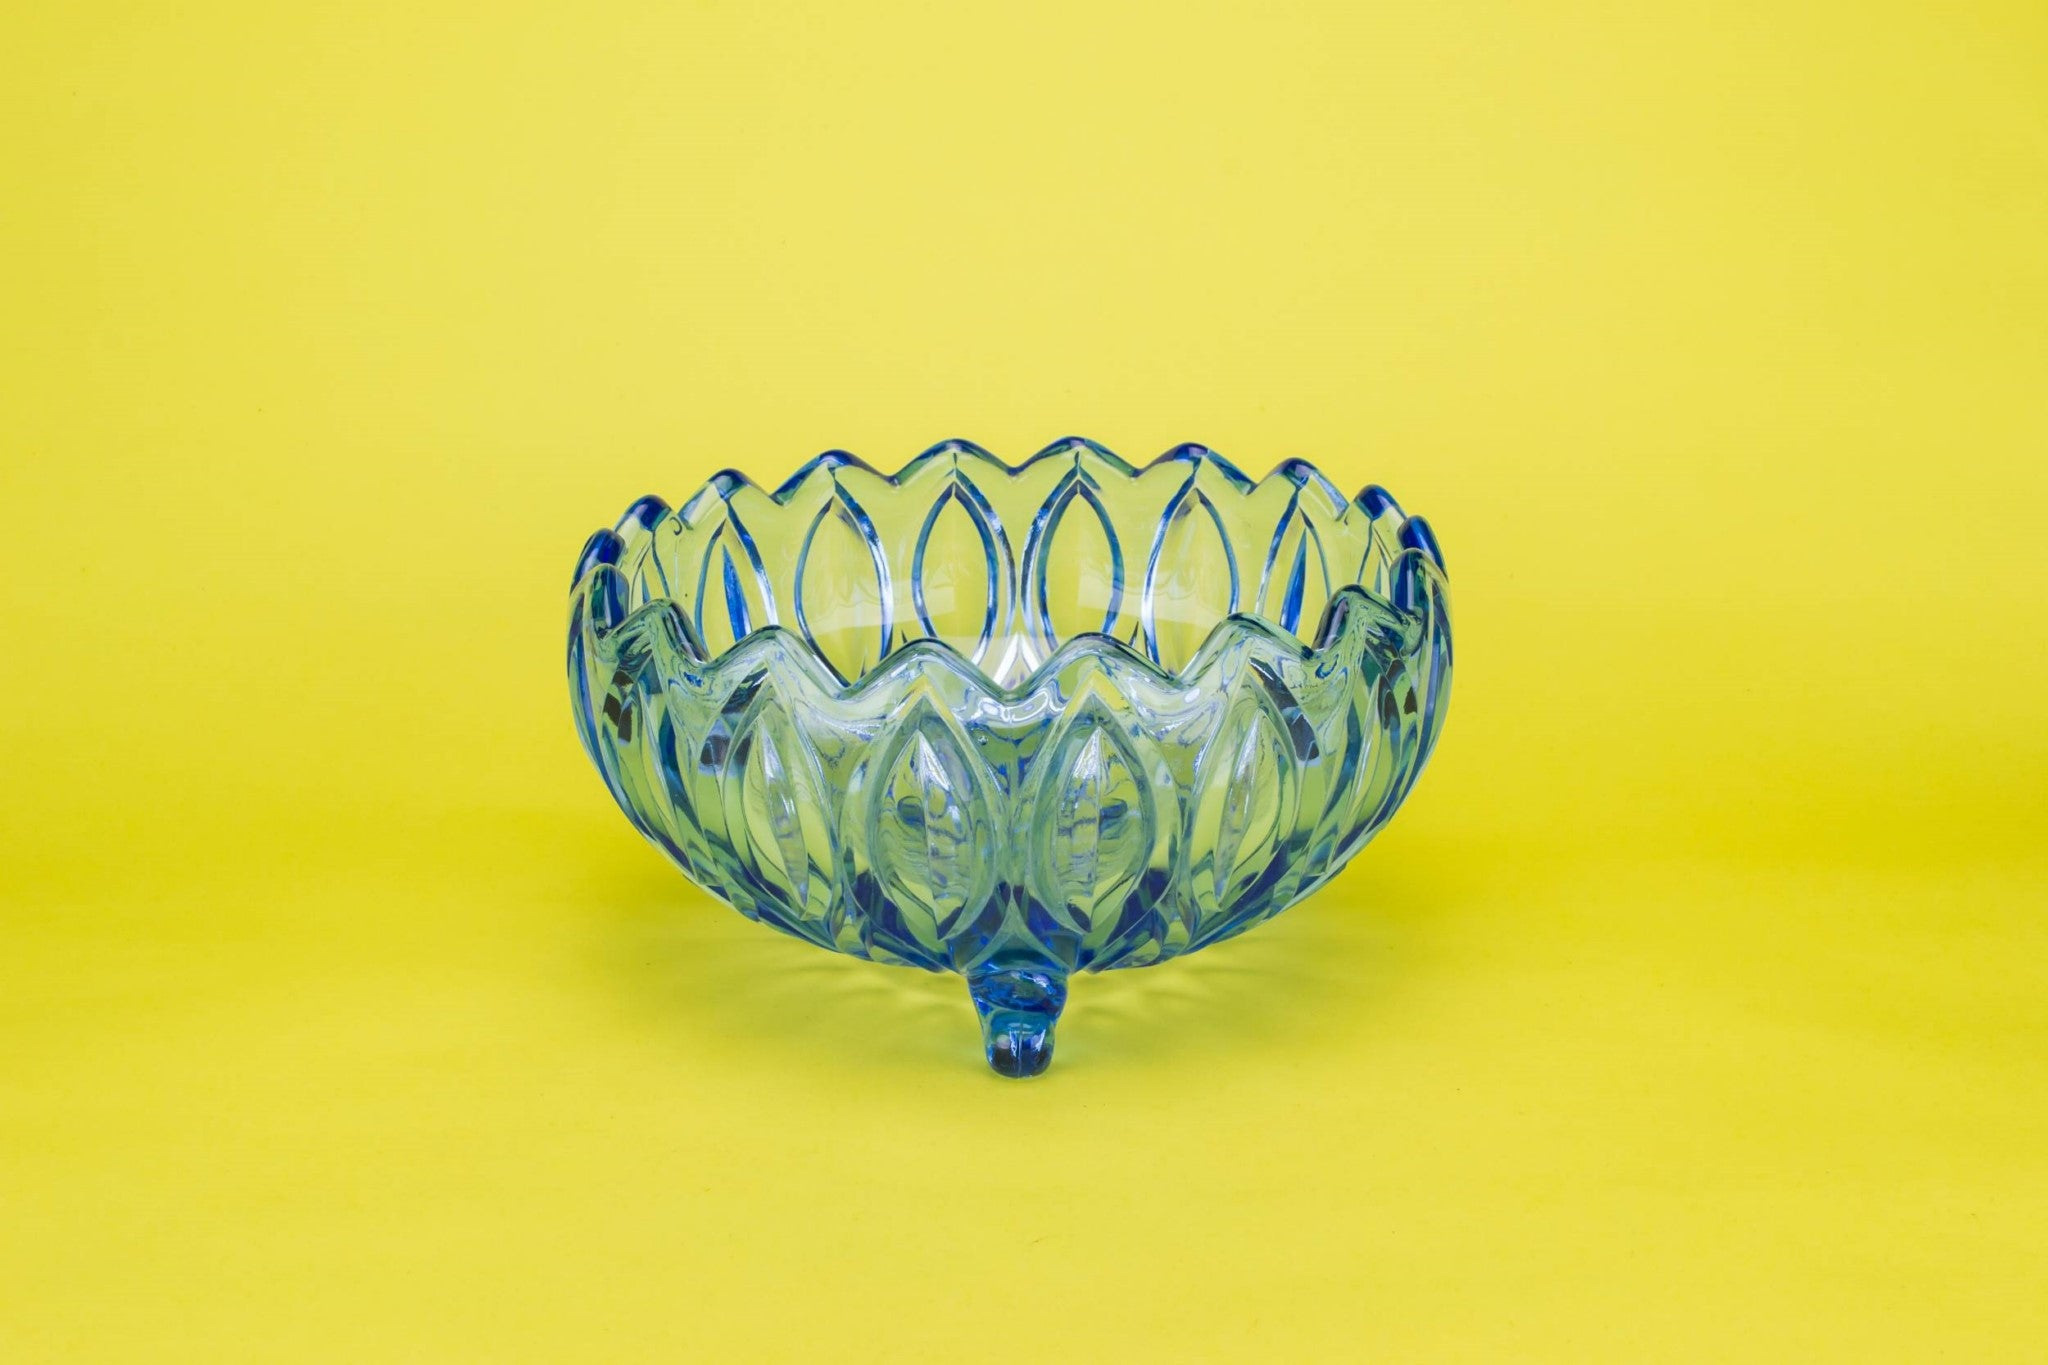 Blue pressed glass bowl